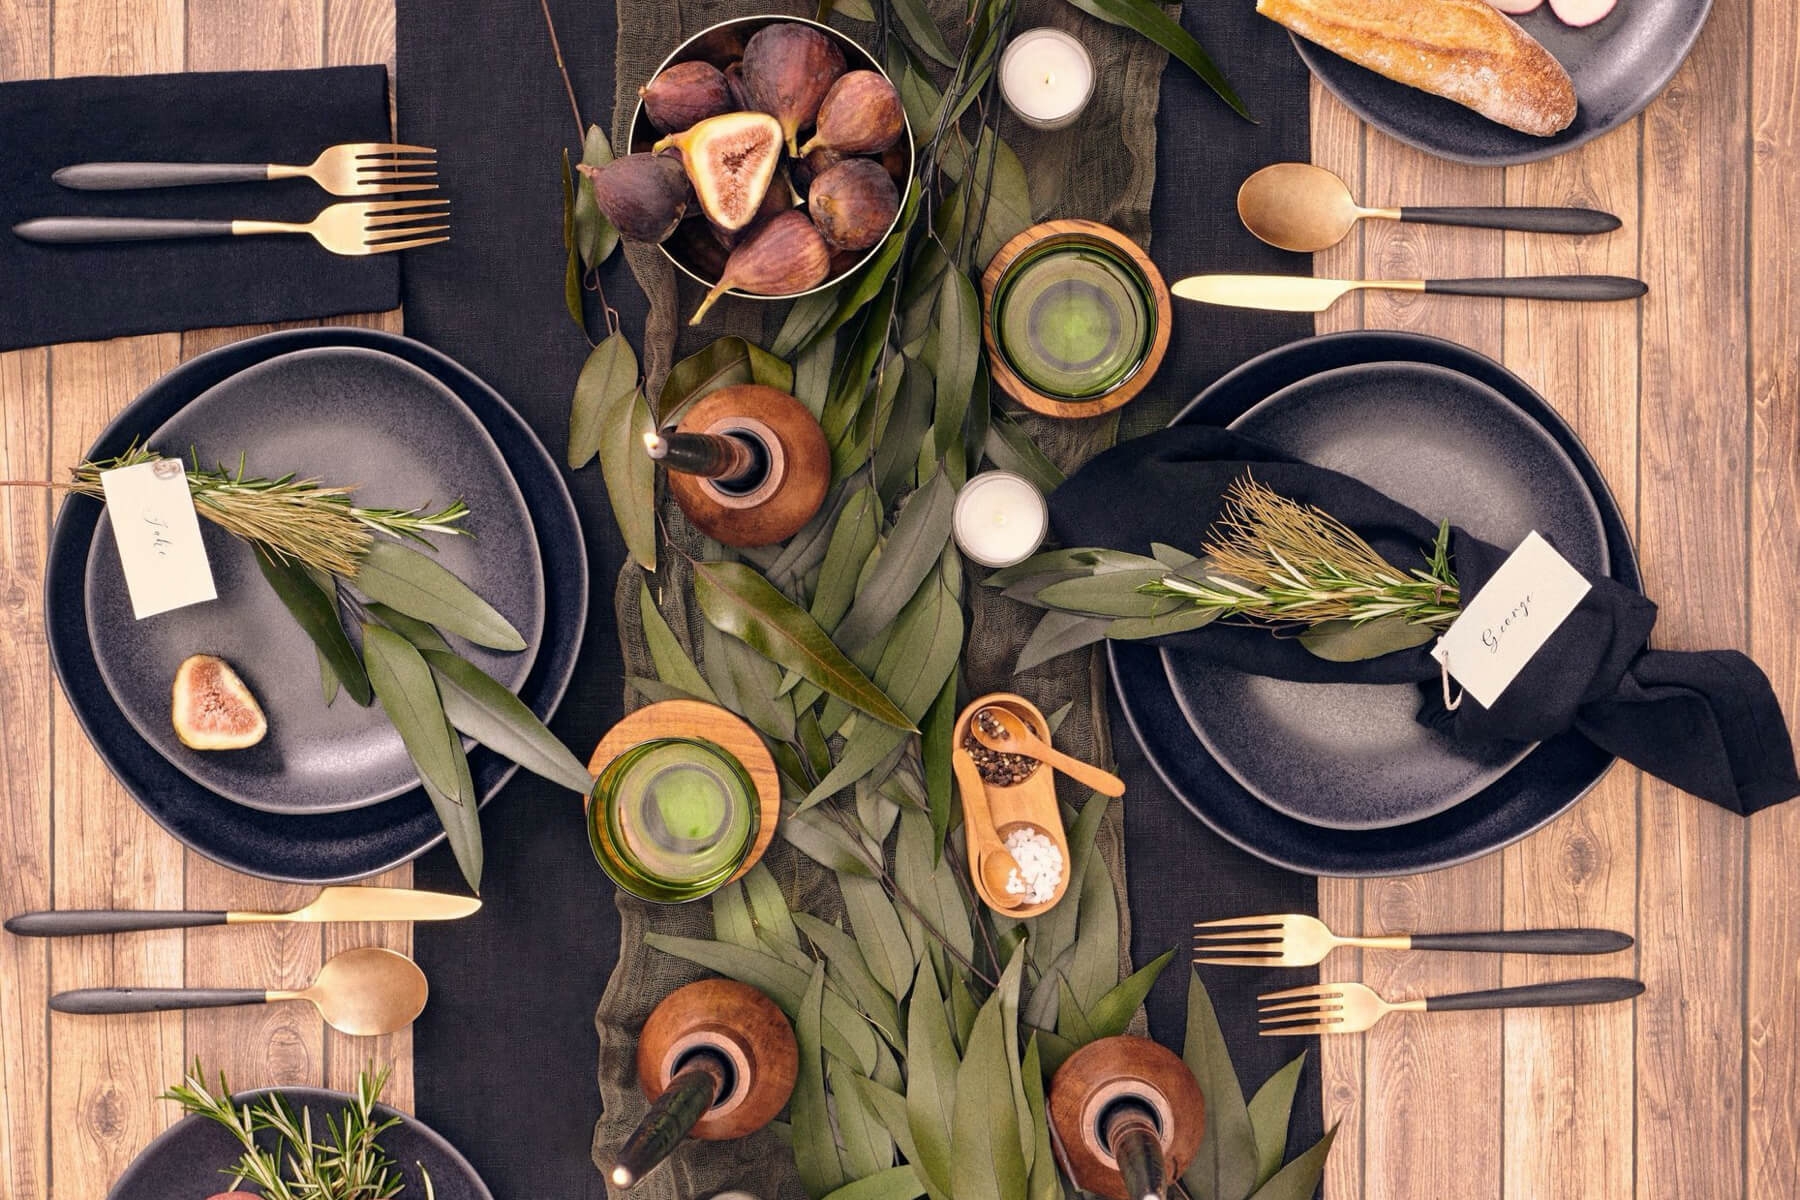 Dark Nordic table from Social Studies with dark plates and a eucalyptus table runner